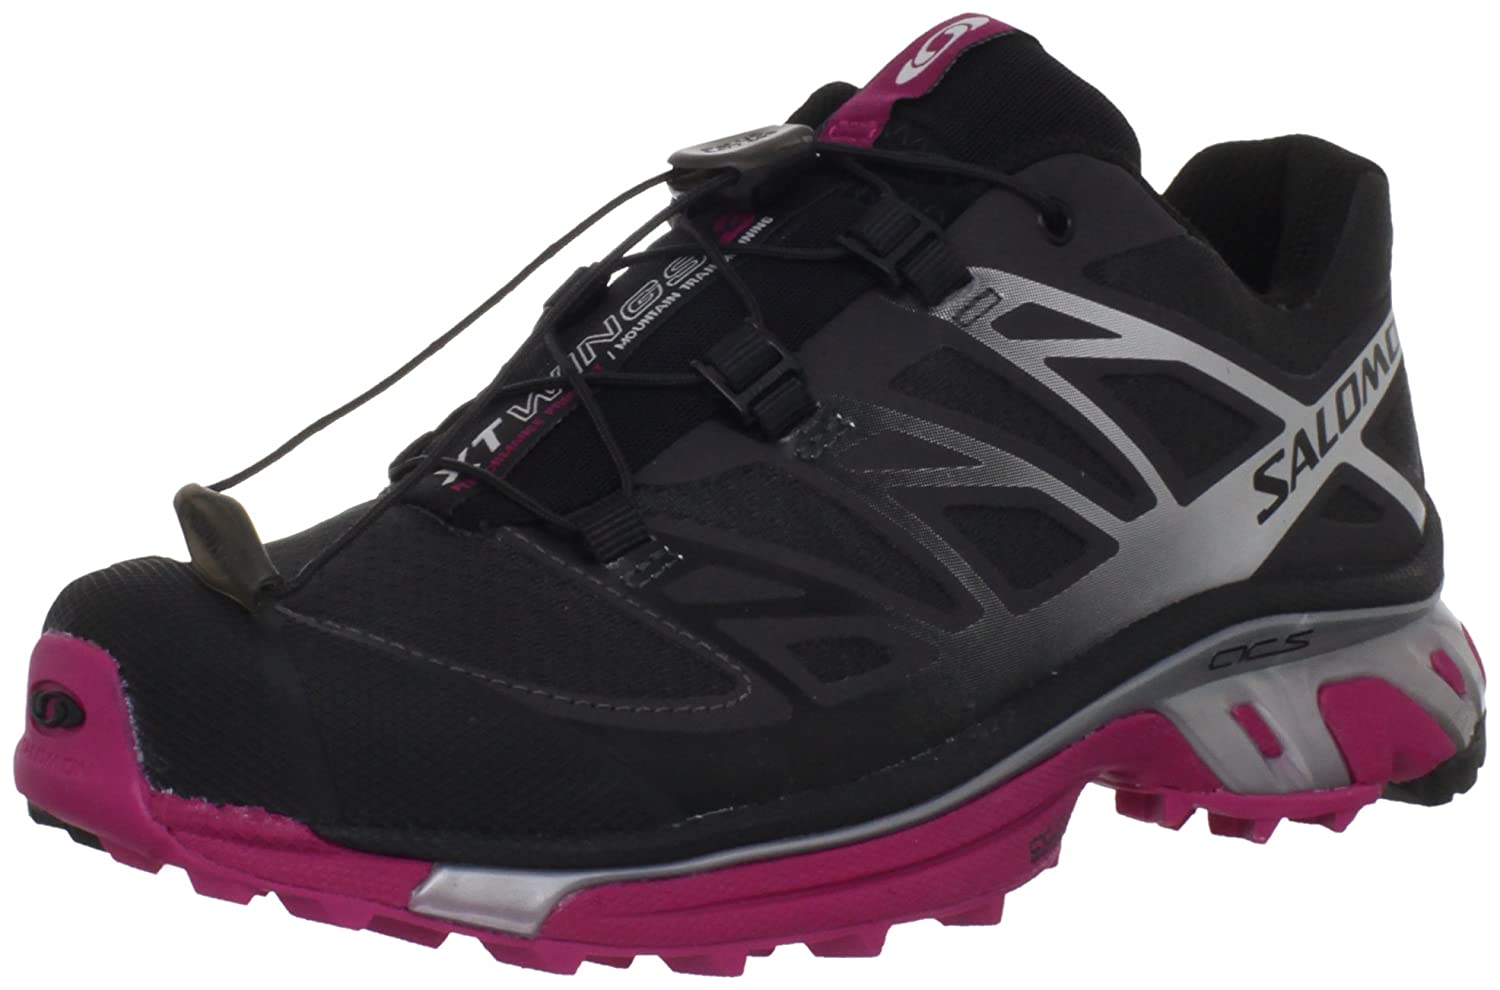 quality design 528d8 a7d58 Salomon Women s XT Wings 3 Trail Running Shoe, Asphalt Silver  Metallic Fancy Pink, 9 M US  Amazon.co.uk  Shoes   Bags